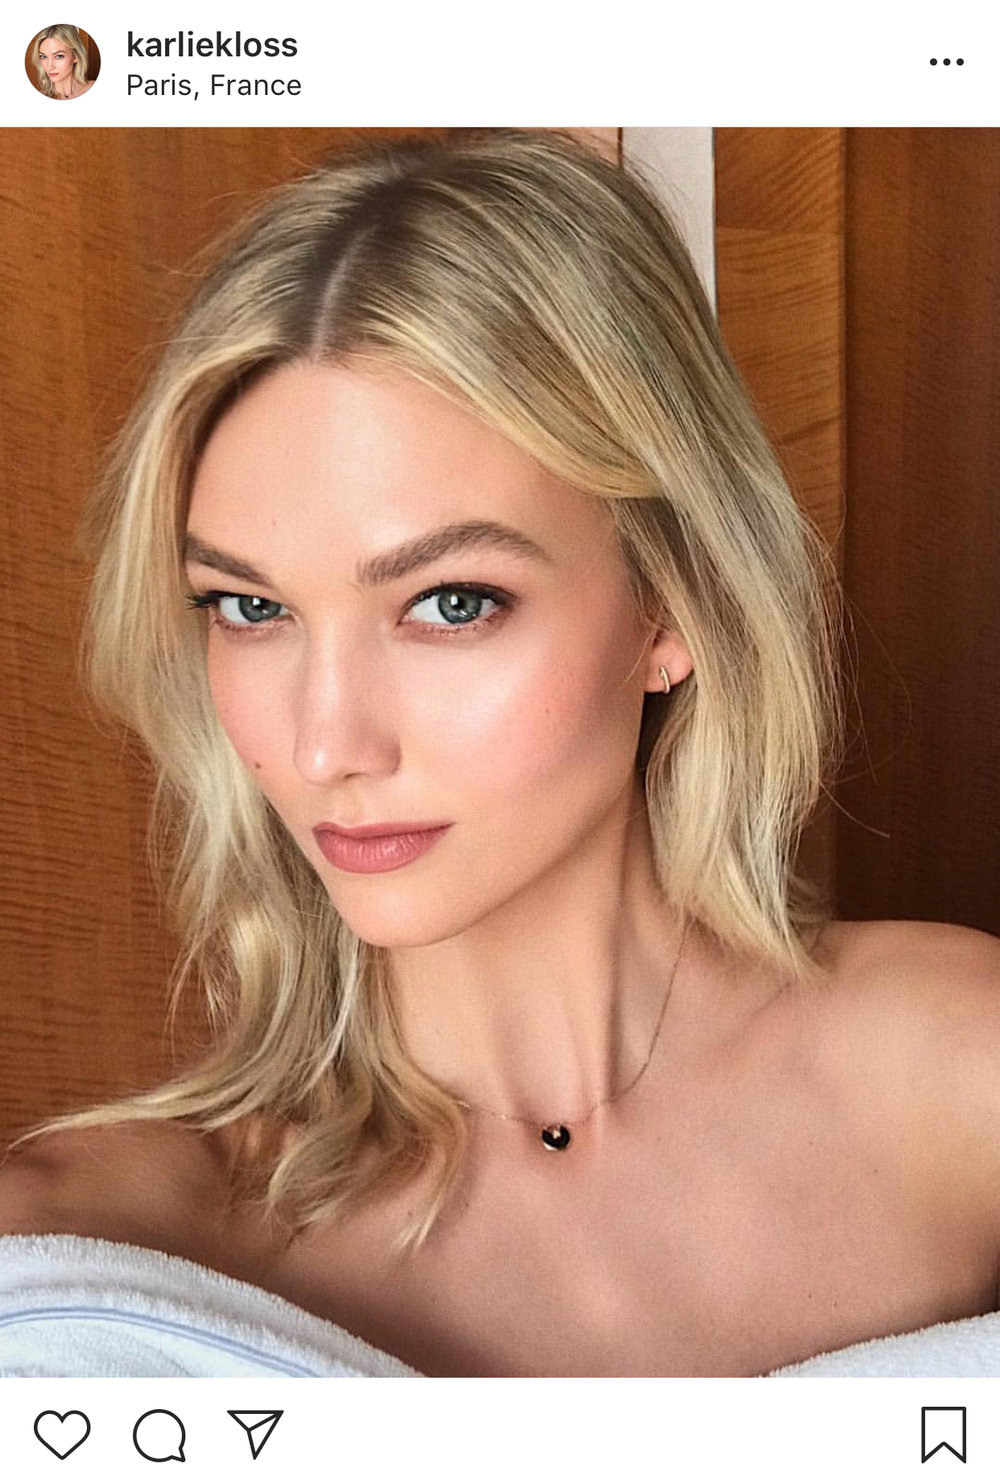 Taken from Karlie Kloss's Instagram @karliekloss